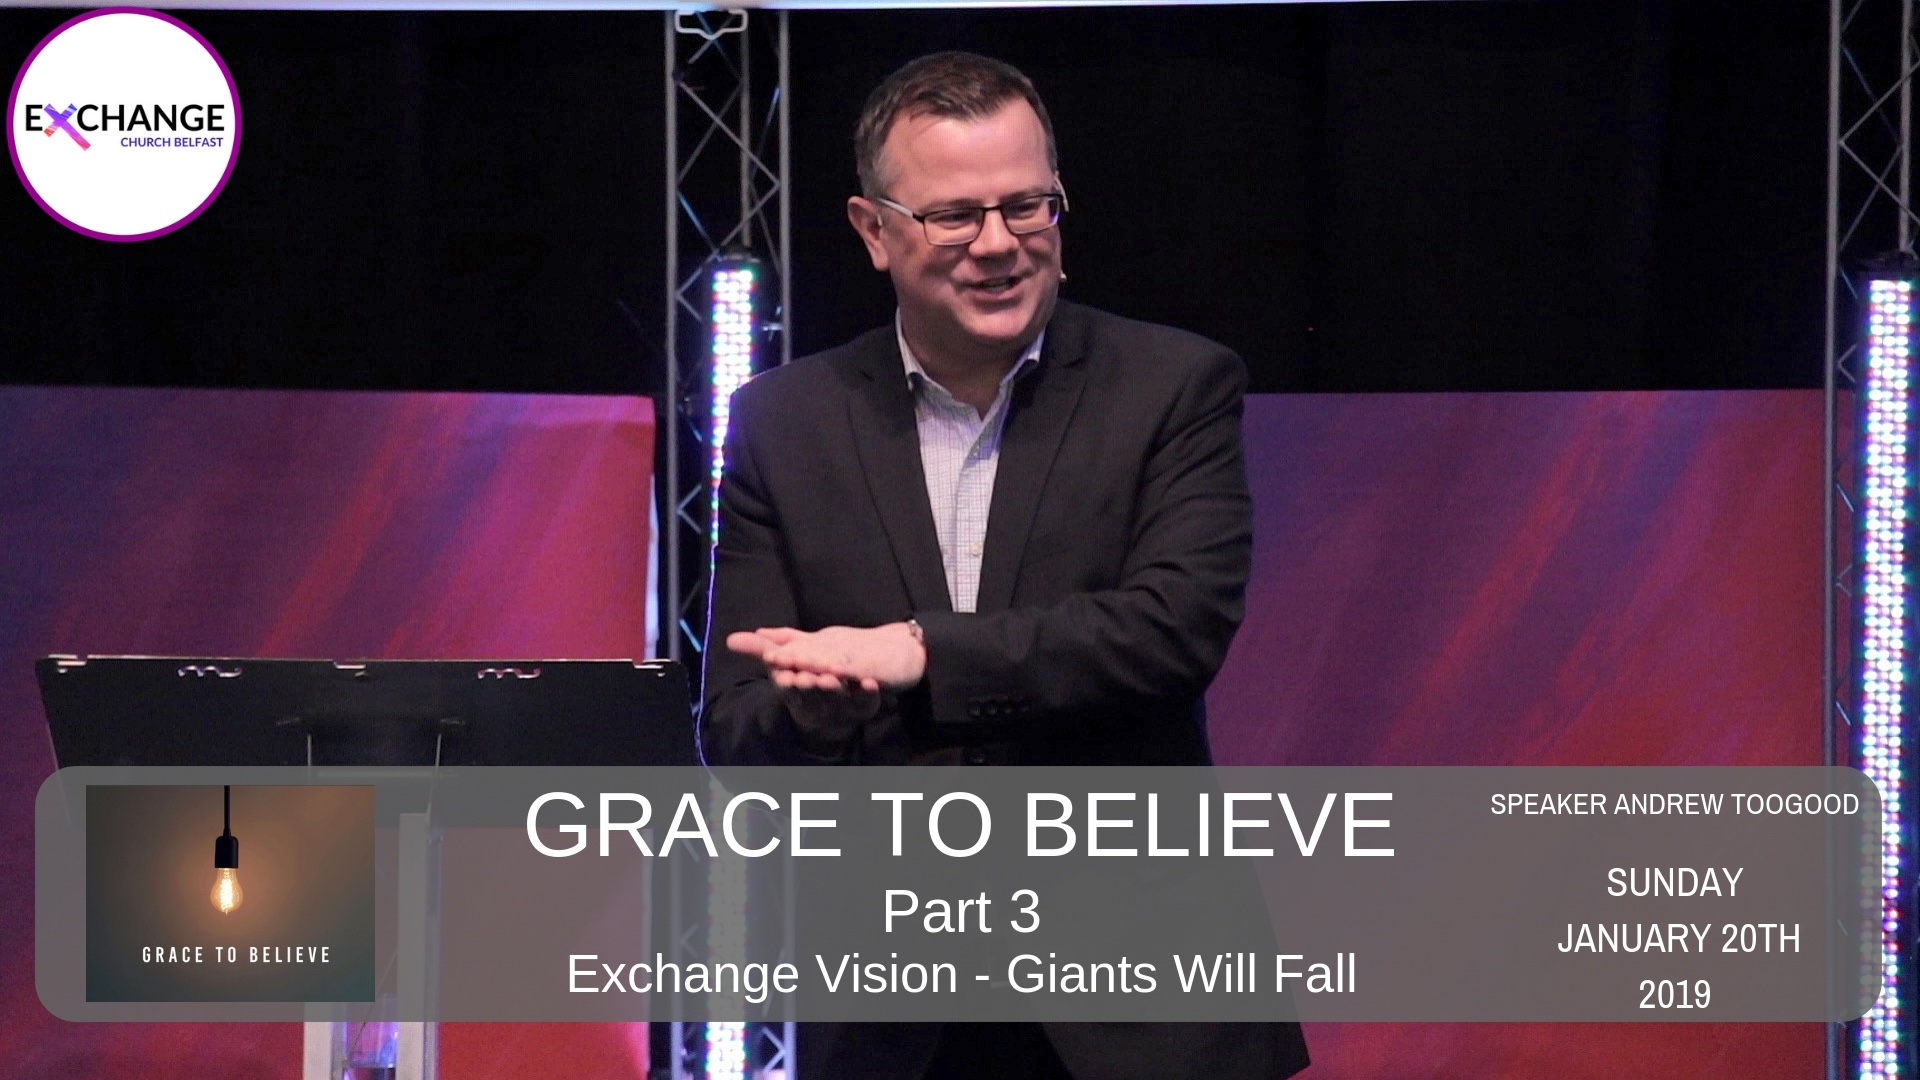 Grace to believe - Part 3 - Exchange vision - Giants will fall